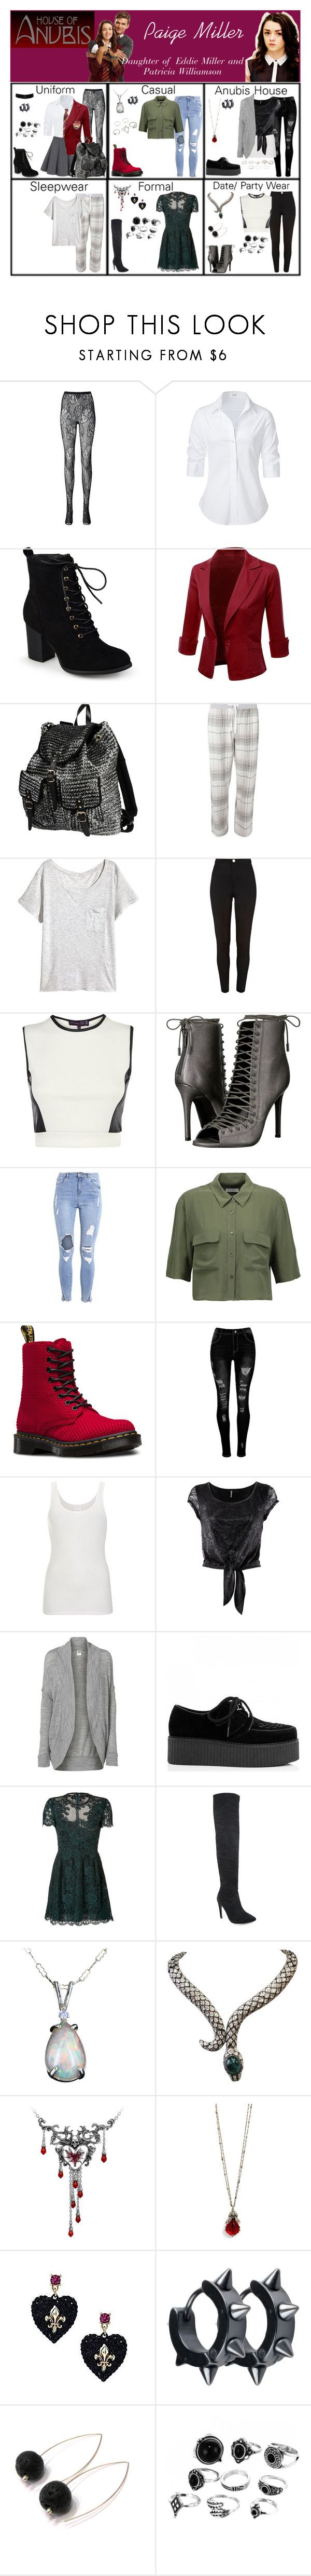 """""""Paige Miller. Daughter over Eddie Miller and Patricia Williamson (House of Anubis)"""" by elmoakepoke ❤ liked on Polyvore featuring Uniqlo, Steffen Schraut, Journee Collection, Doublju, 2 Di Picche Recycled, Dorothy Perkins, River Island, Rubee B, Kendall + Kylie and Equipment"""